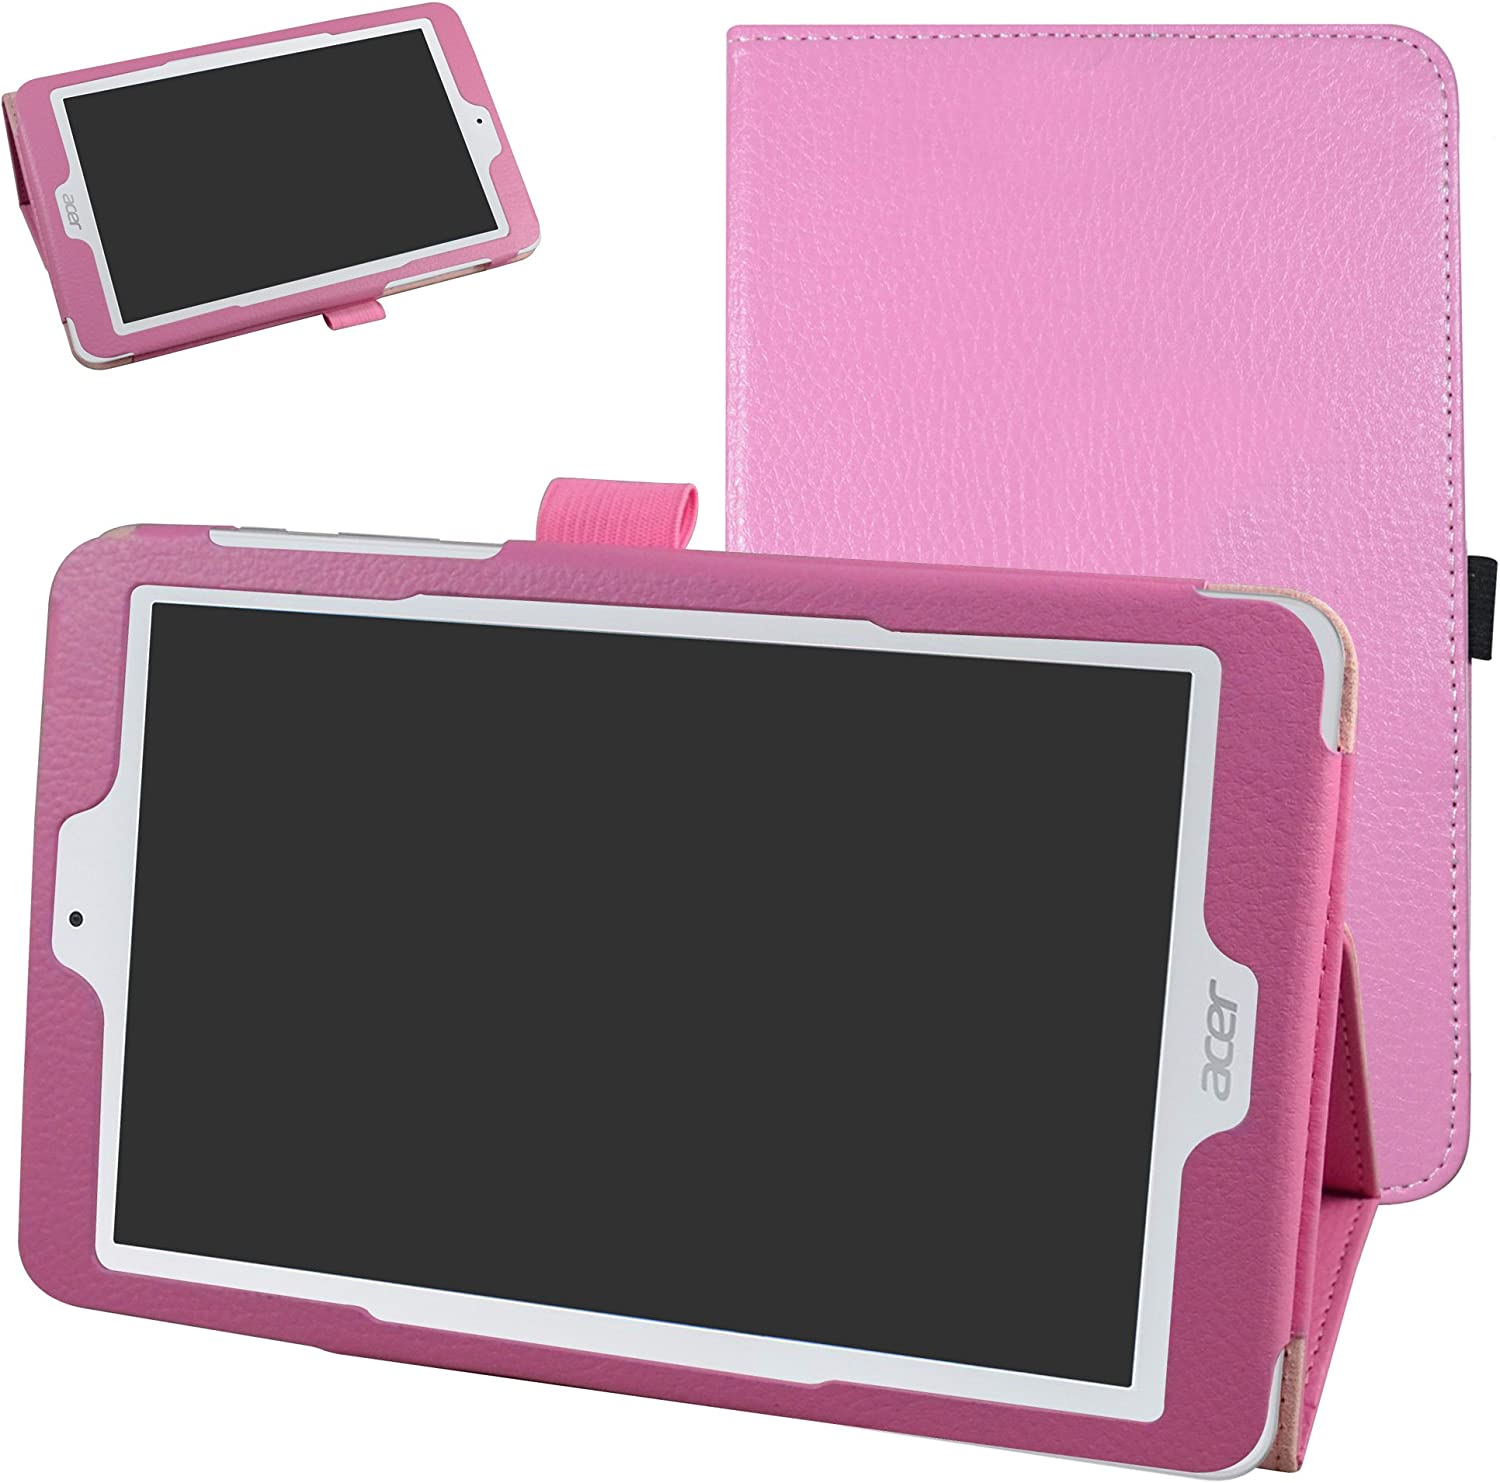 "Acer Iconia One 8 B1-850 Case,Mama Mouth PU Leather Folio 2-Folding Stand Cover with Stylus Holder for 8"" Acer Iconia One 8 B1-850 Android Tablet,Pink"